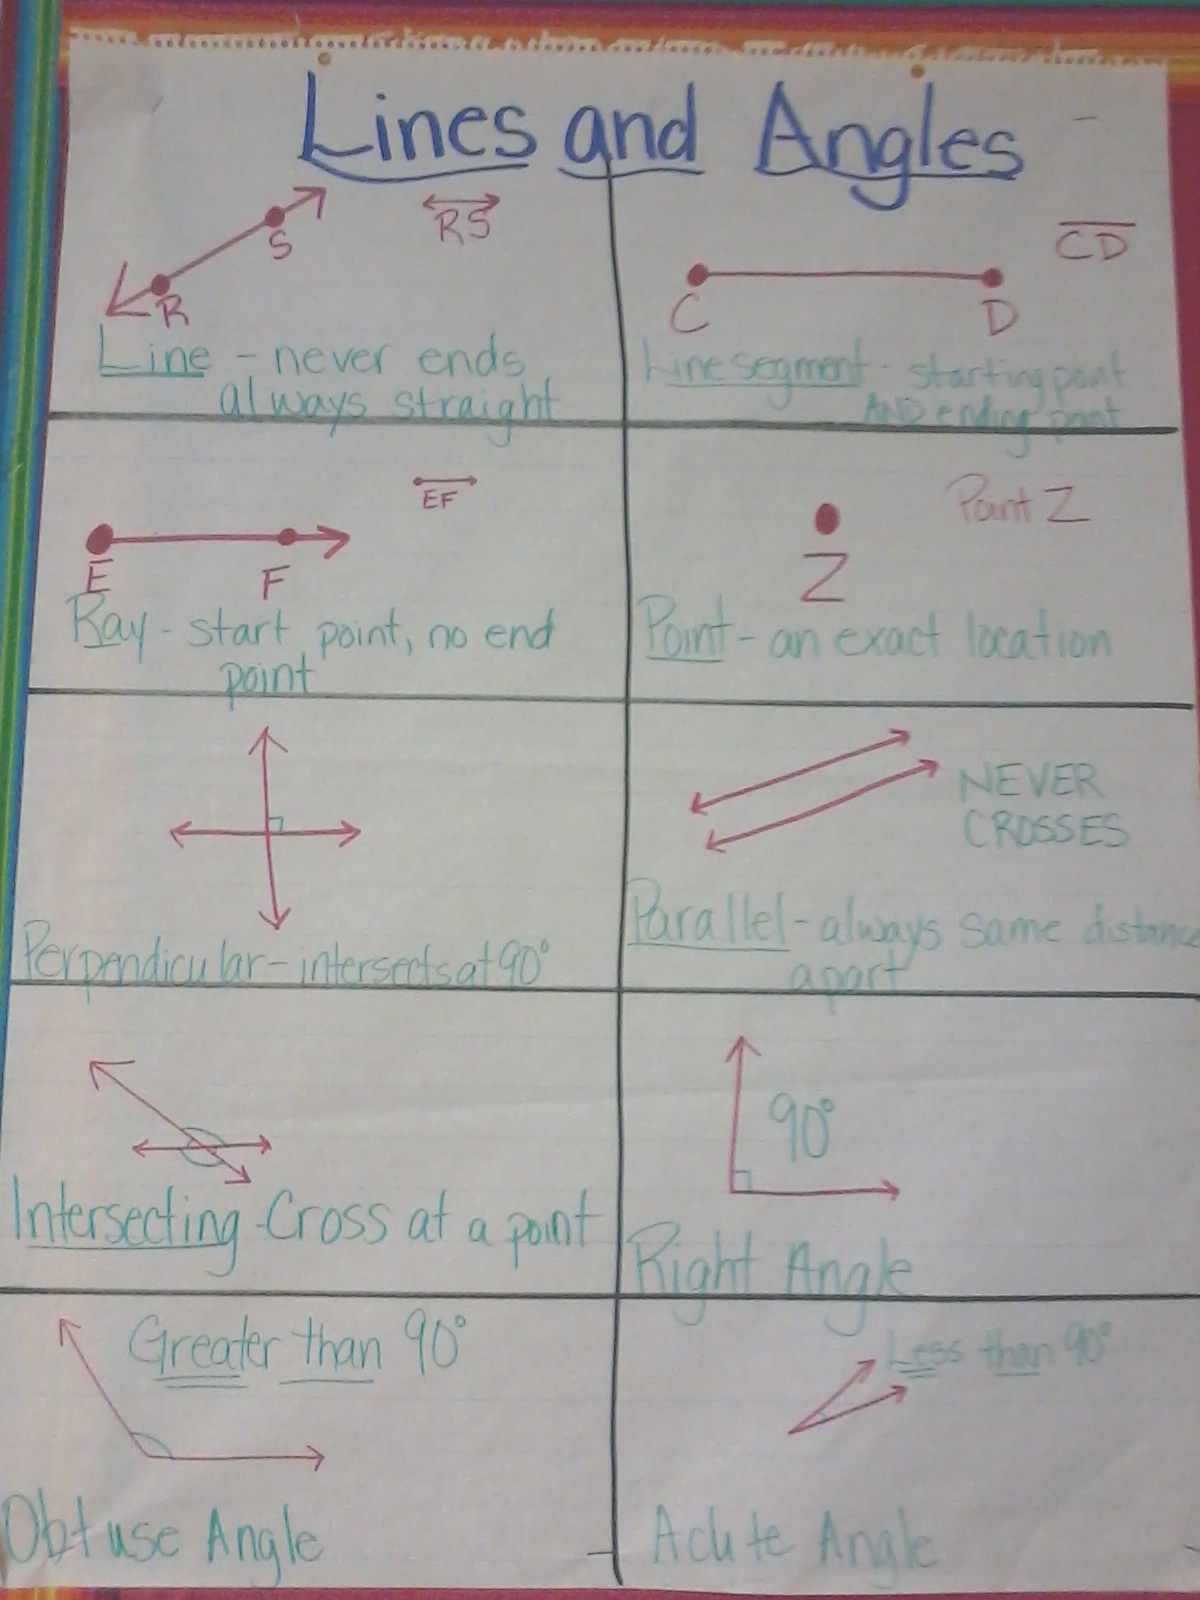 Mla Rocks 4th Math And Science Points Lines And Angles